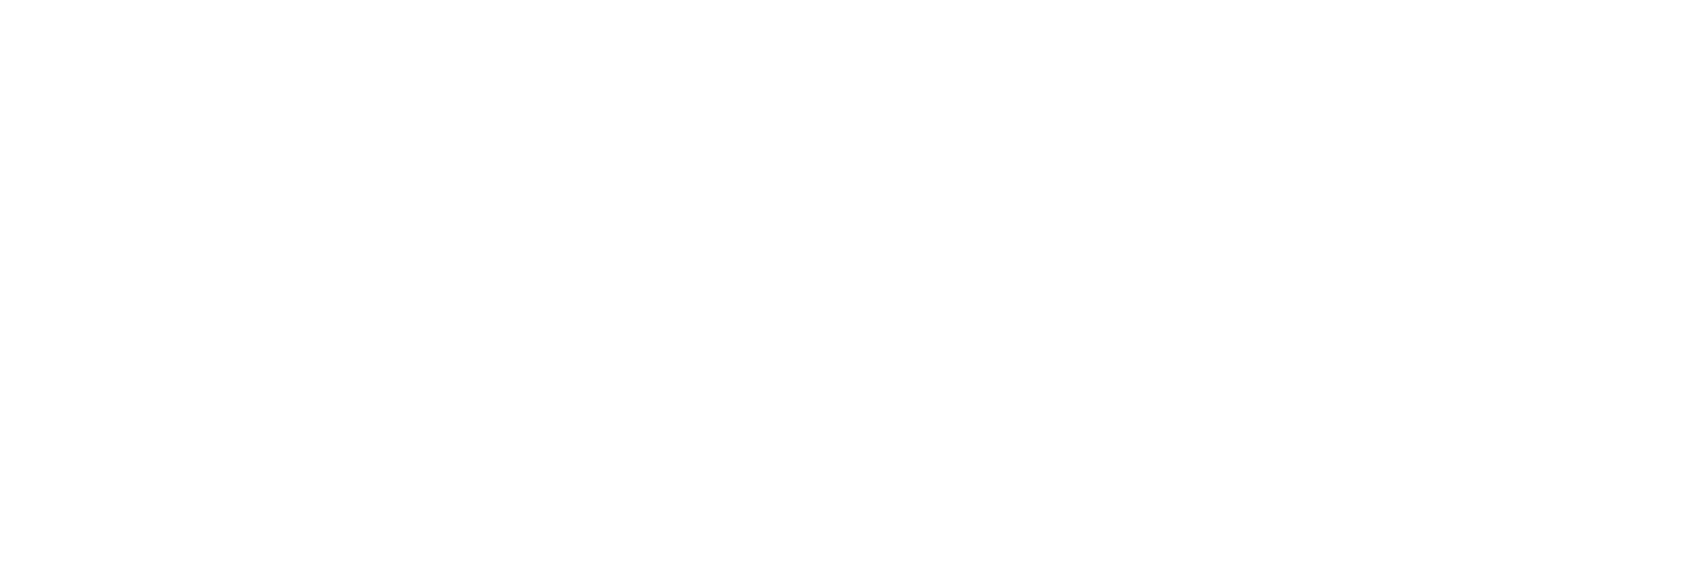 Vanfly Private Limited